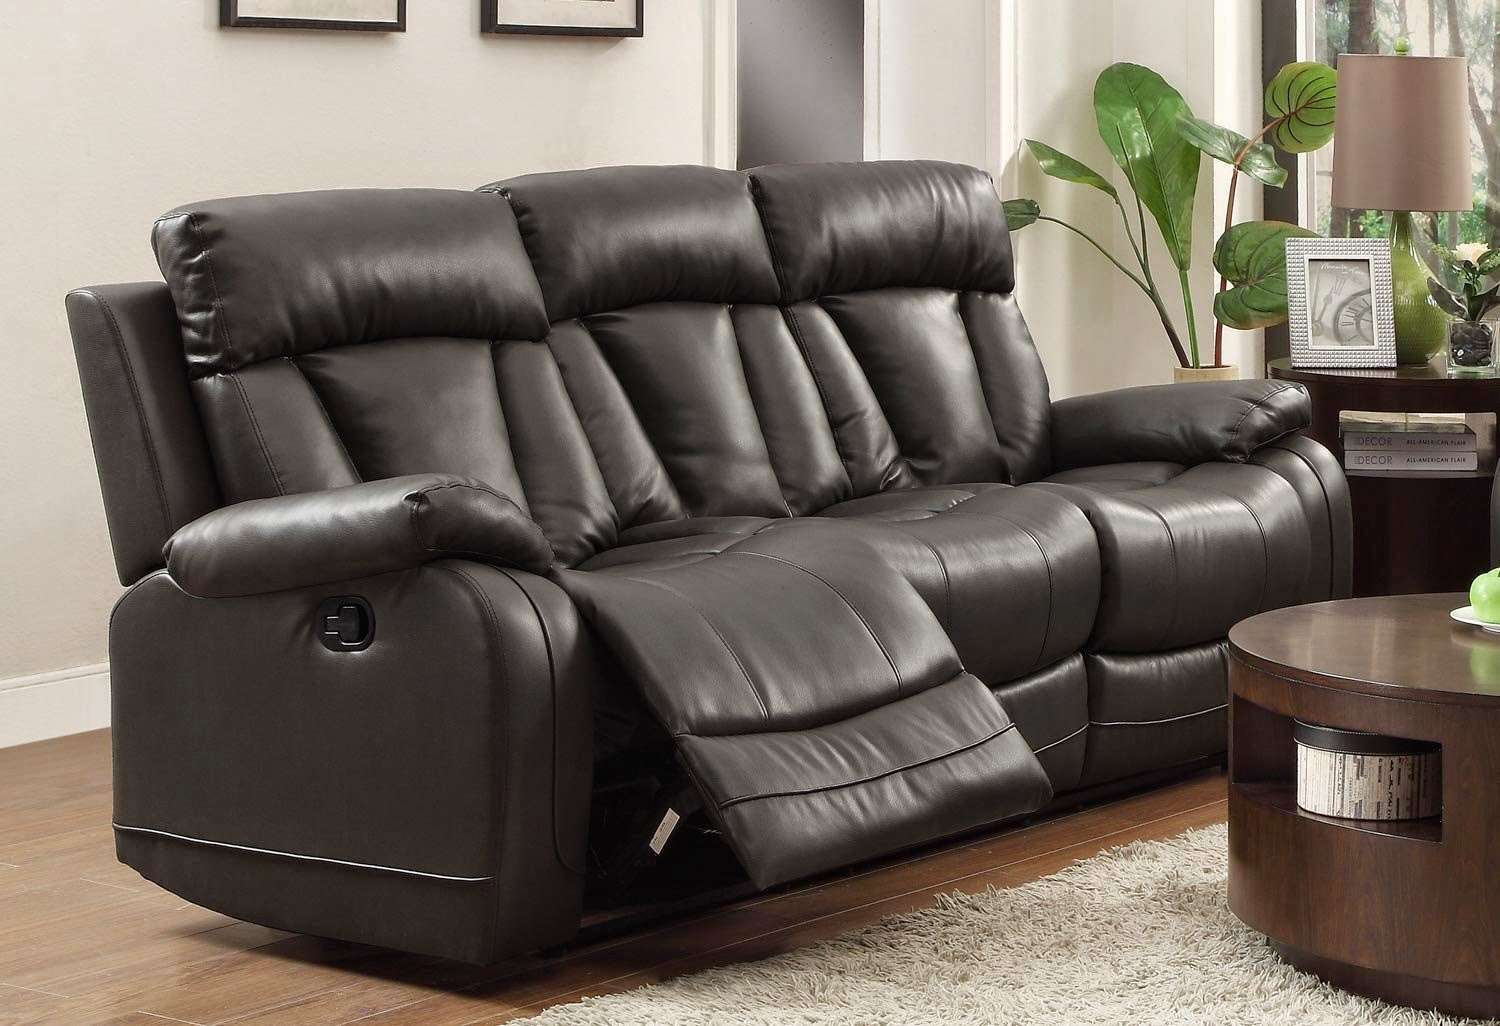 ryker reclining sofa and loveseat 2 piece set corner couch bed nz best leather brands reviews alpha dual homelegance black